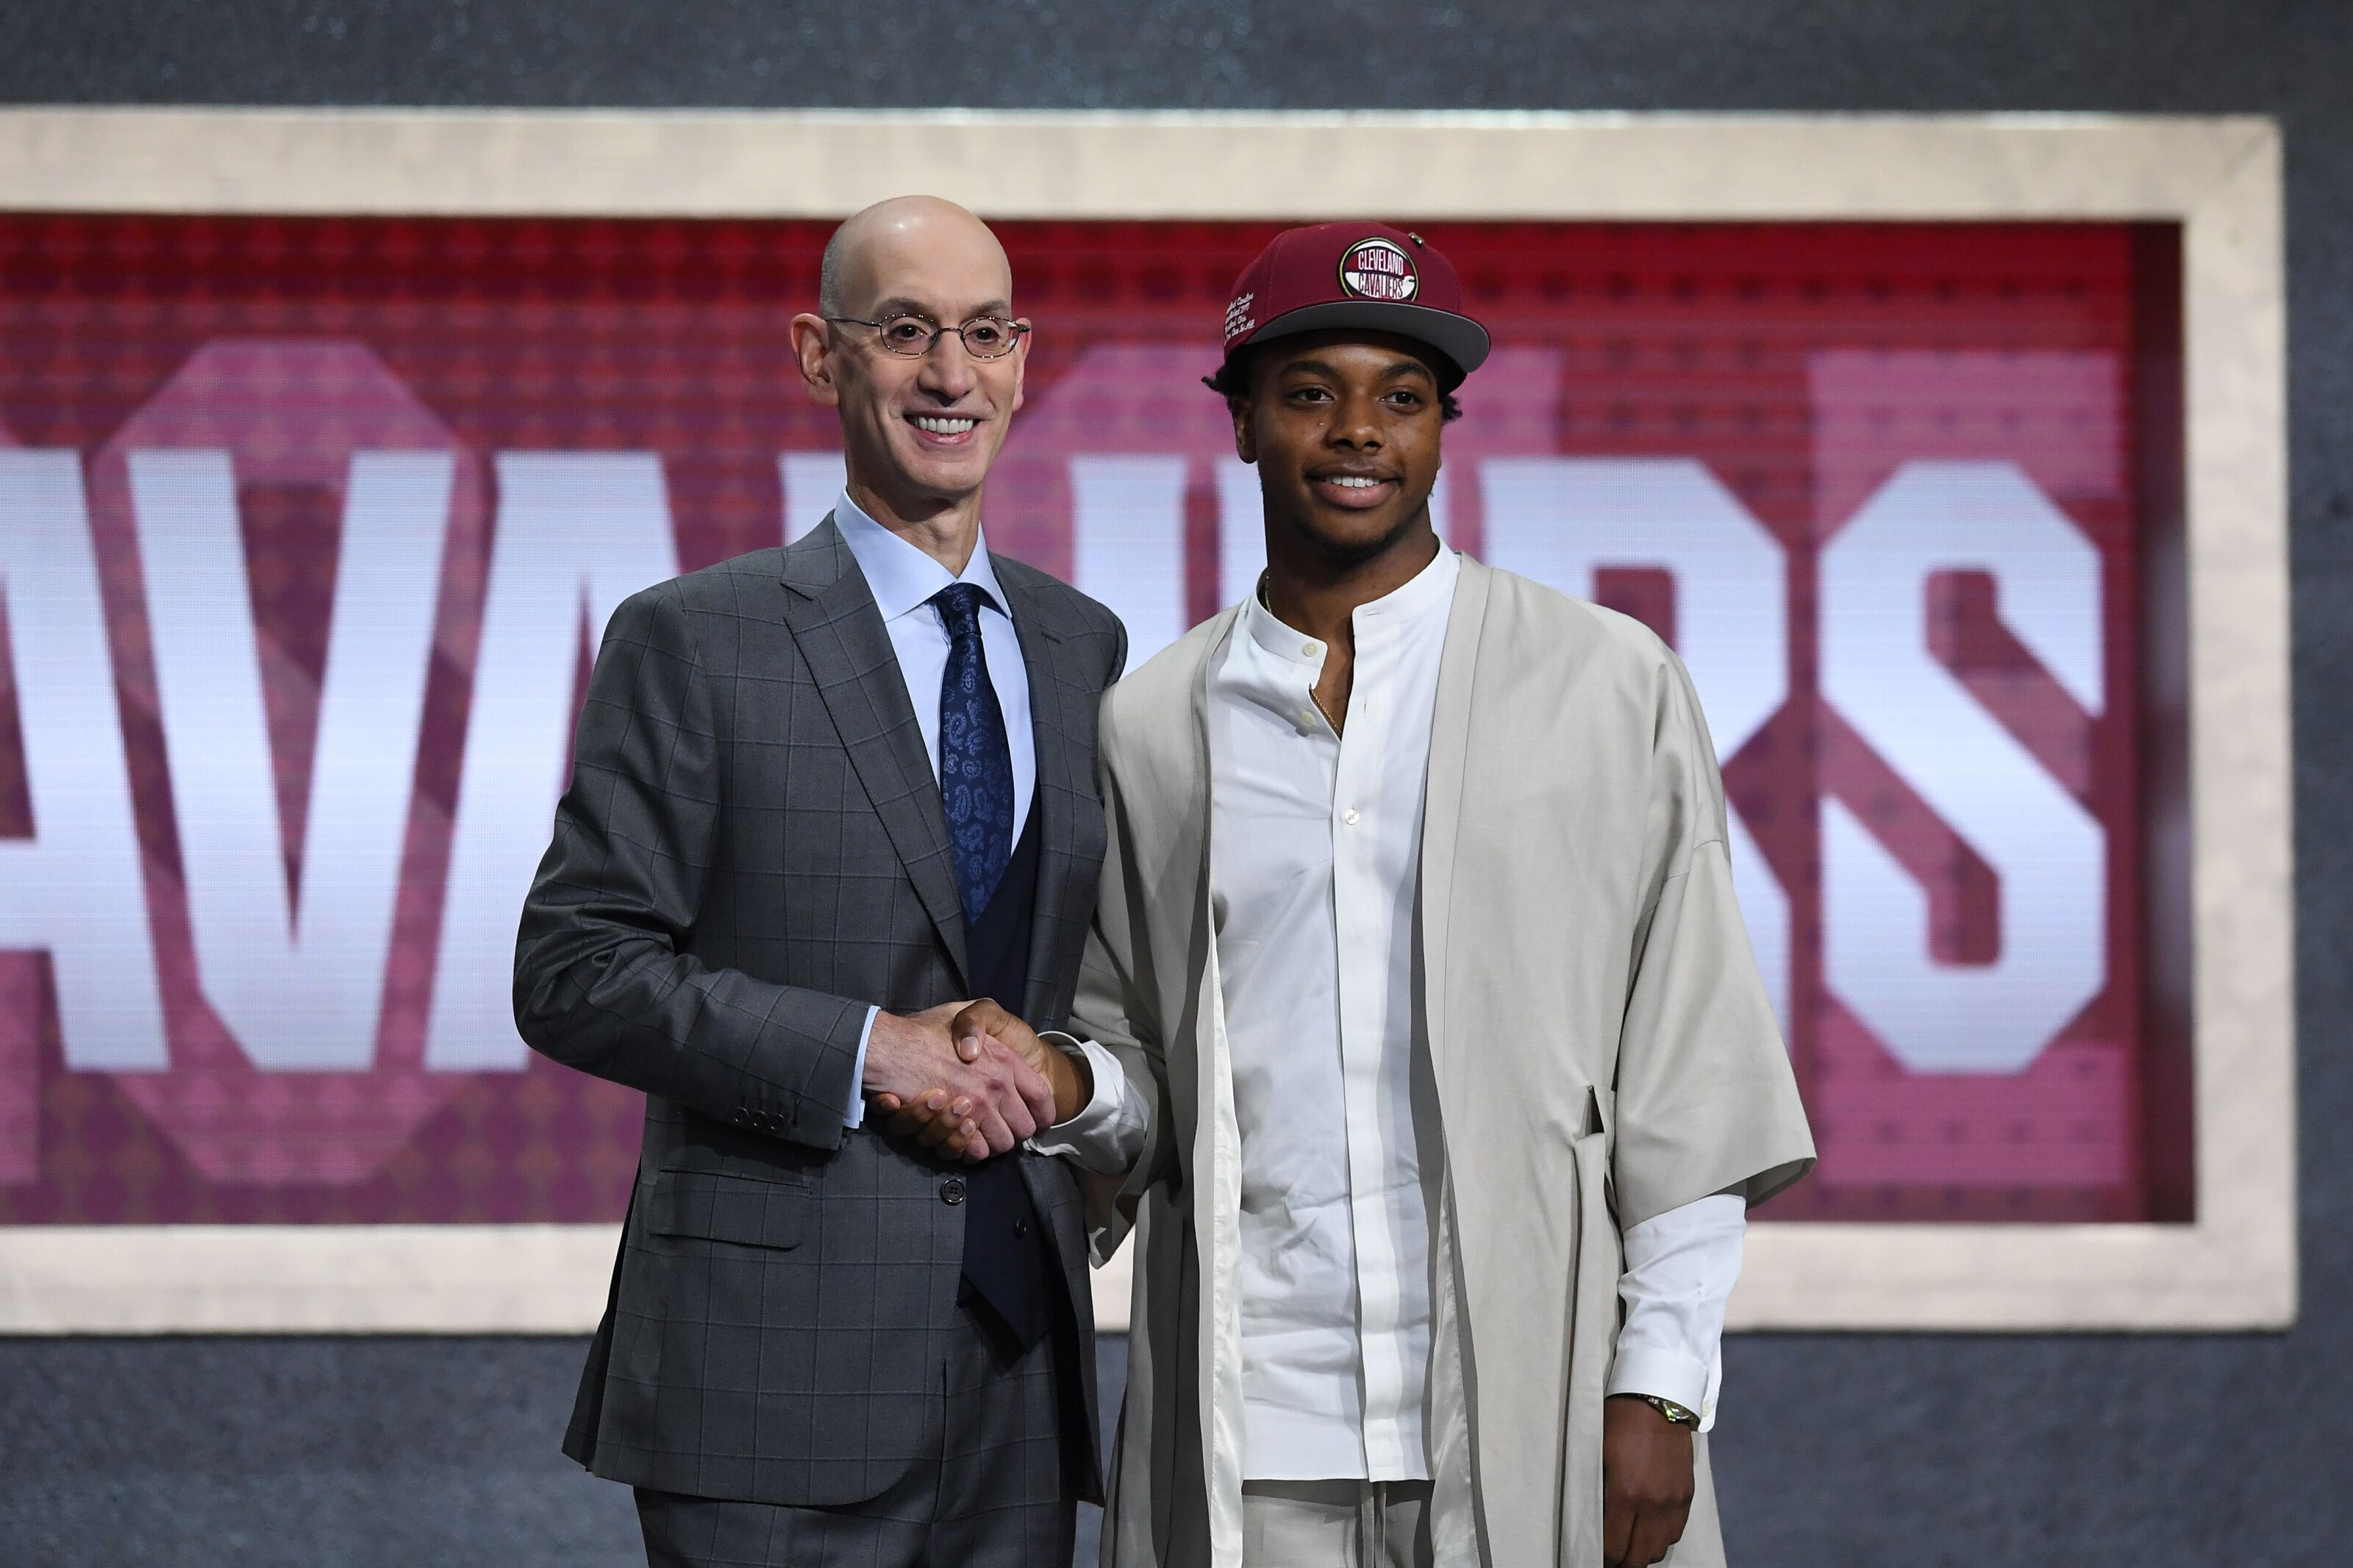 Cleveland Cavaliers: Collin Sexton, Darius Garland, who's going to create?